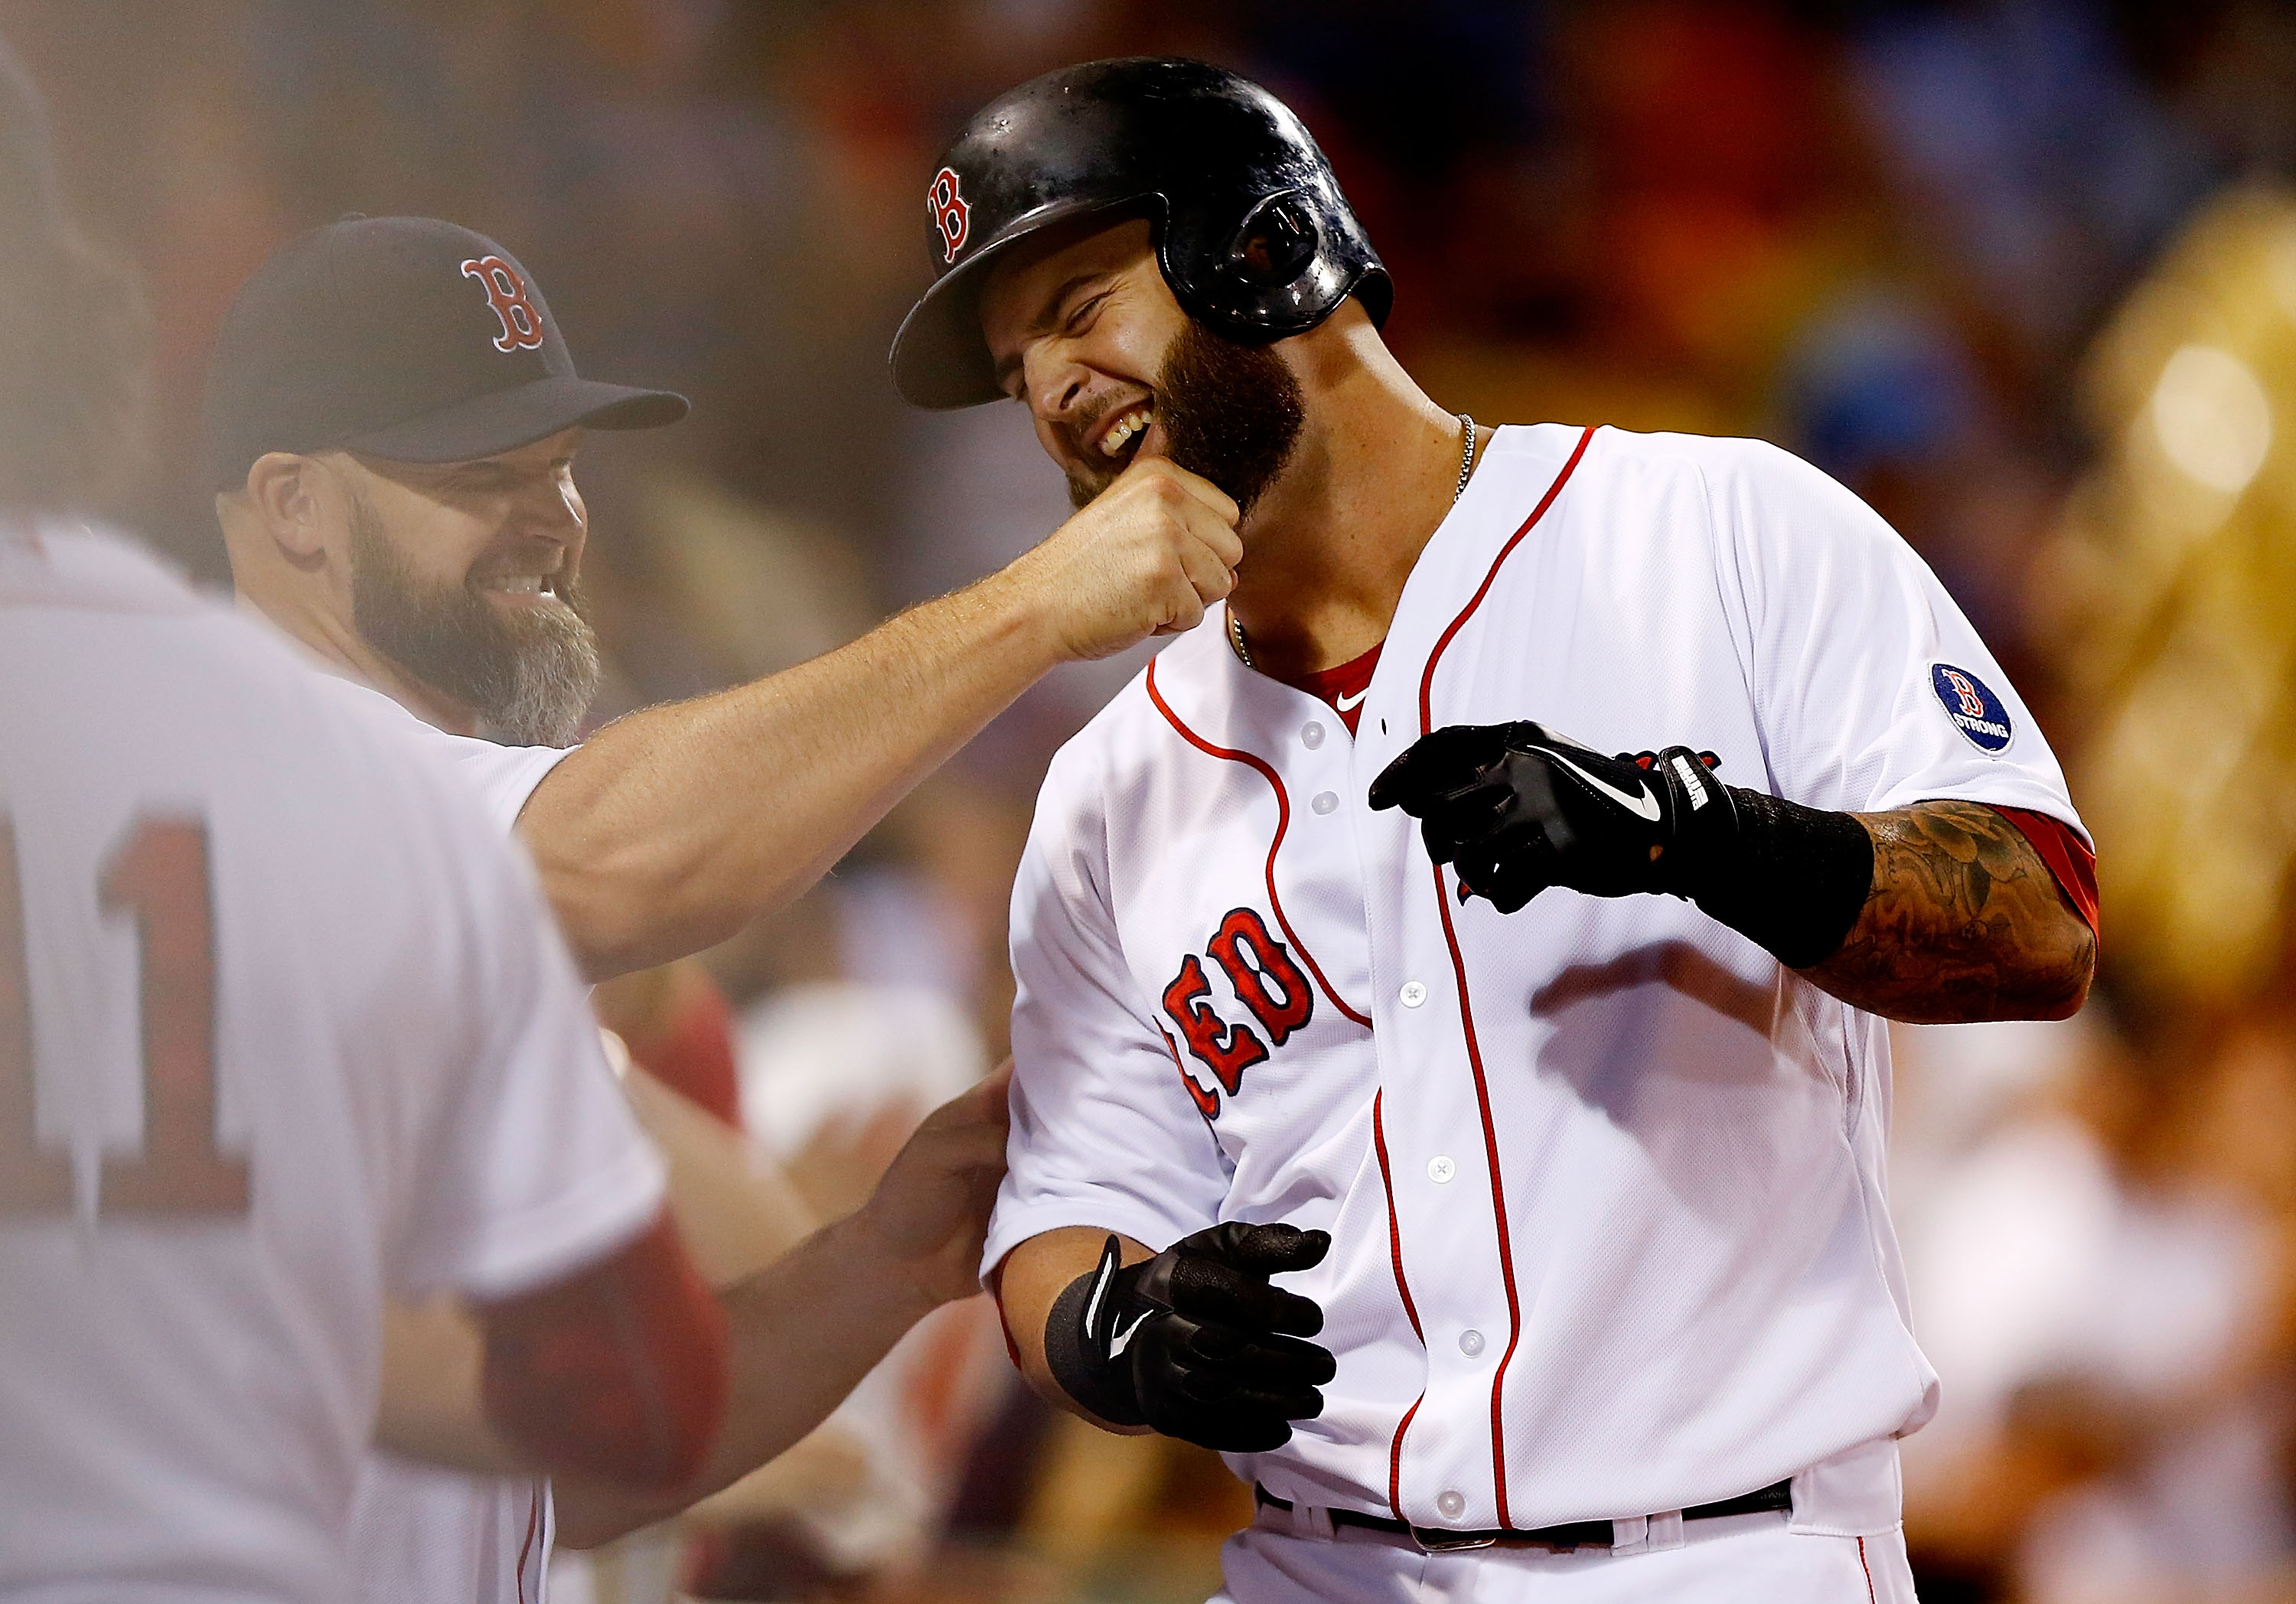 Mike Napoli and David Ross as Red Sox teammates in 2013.